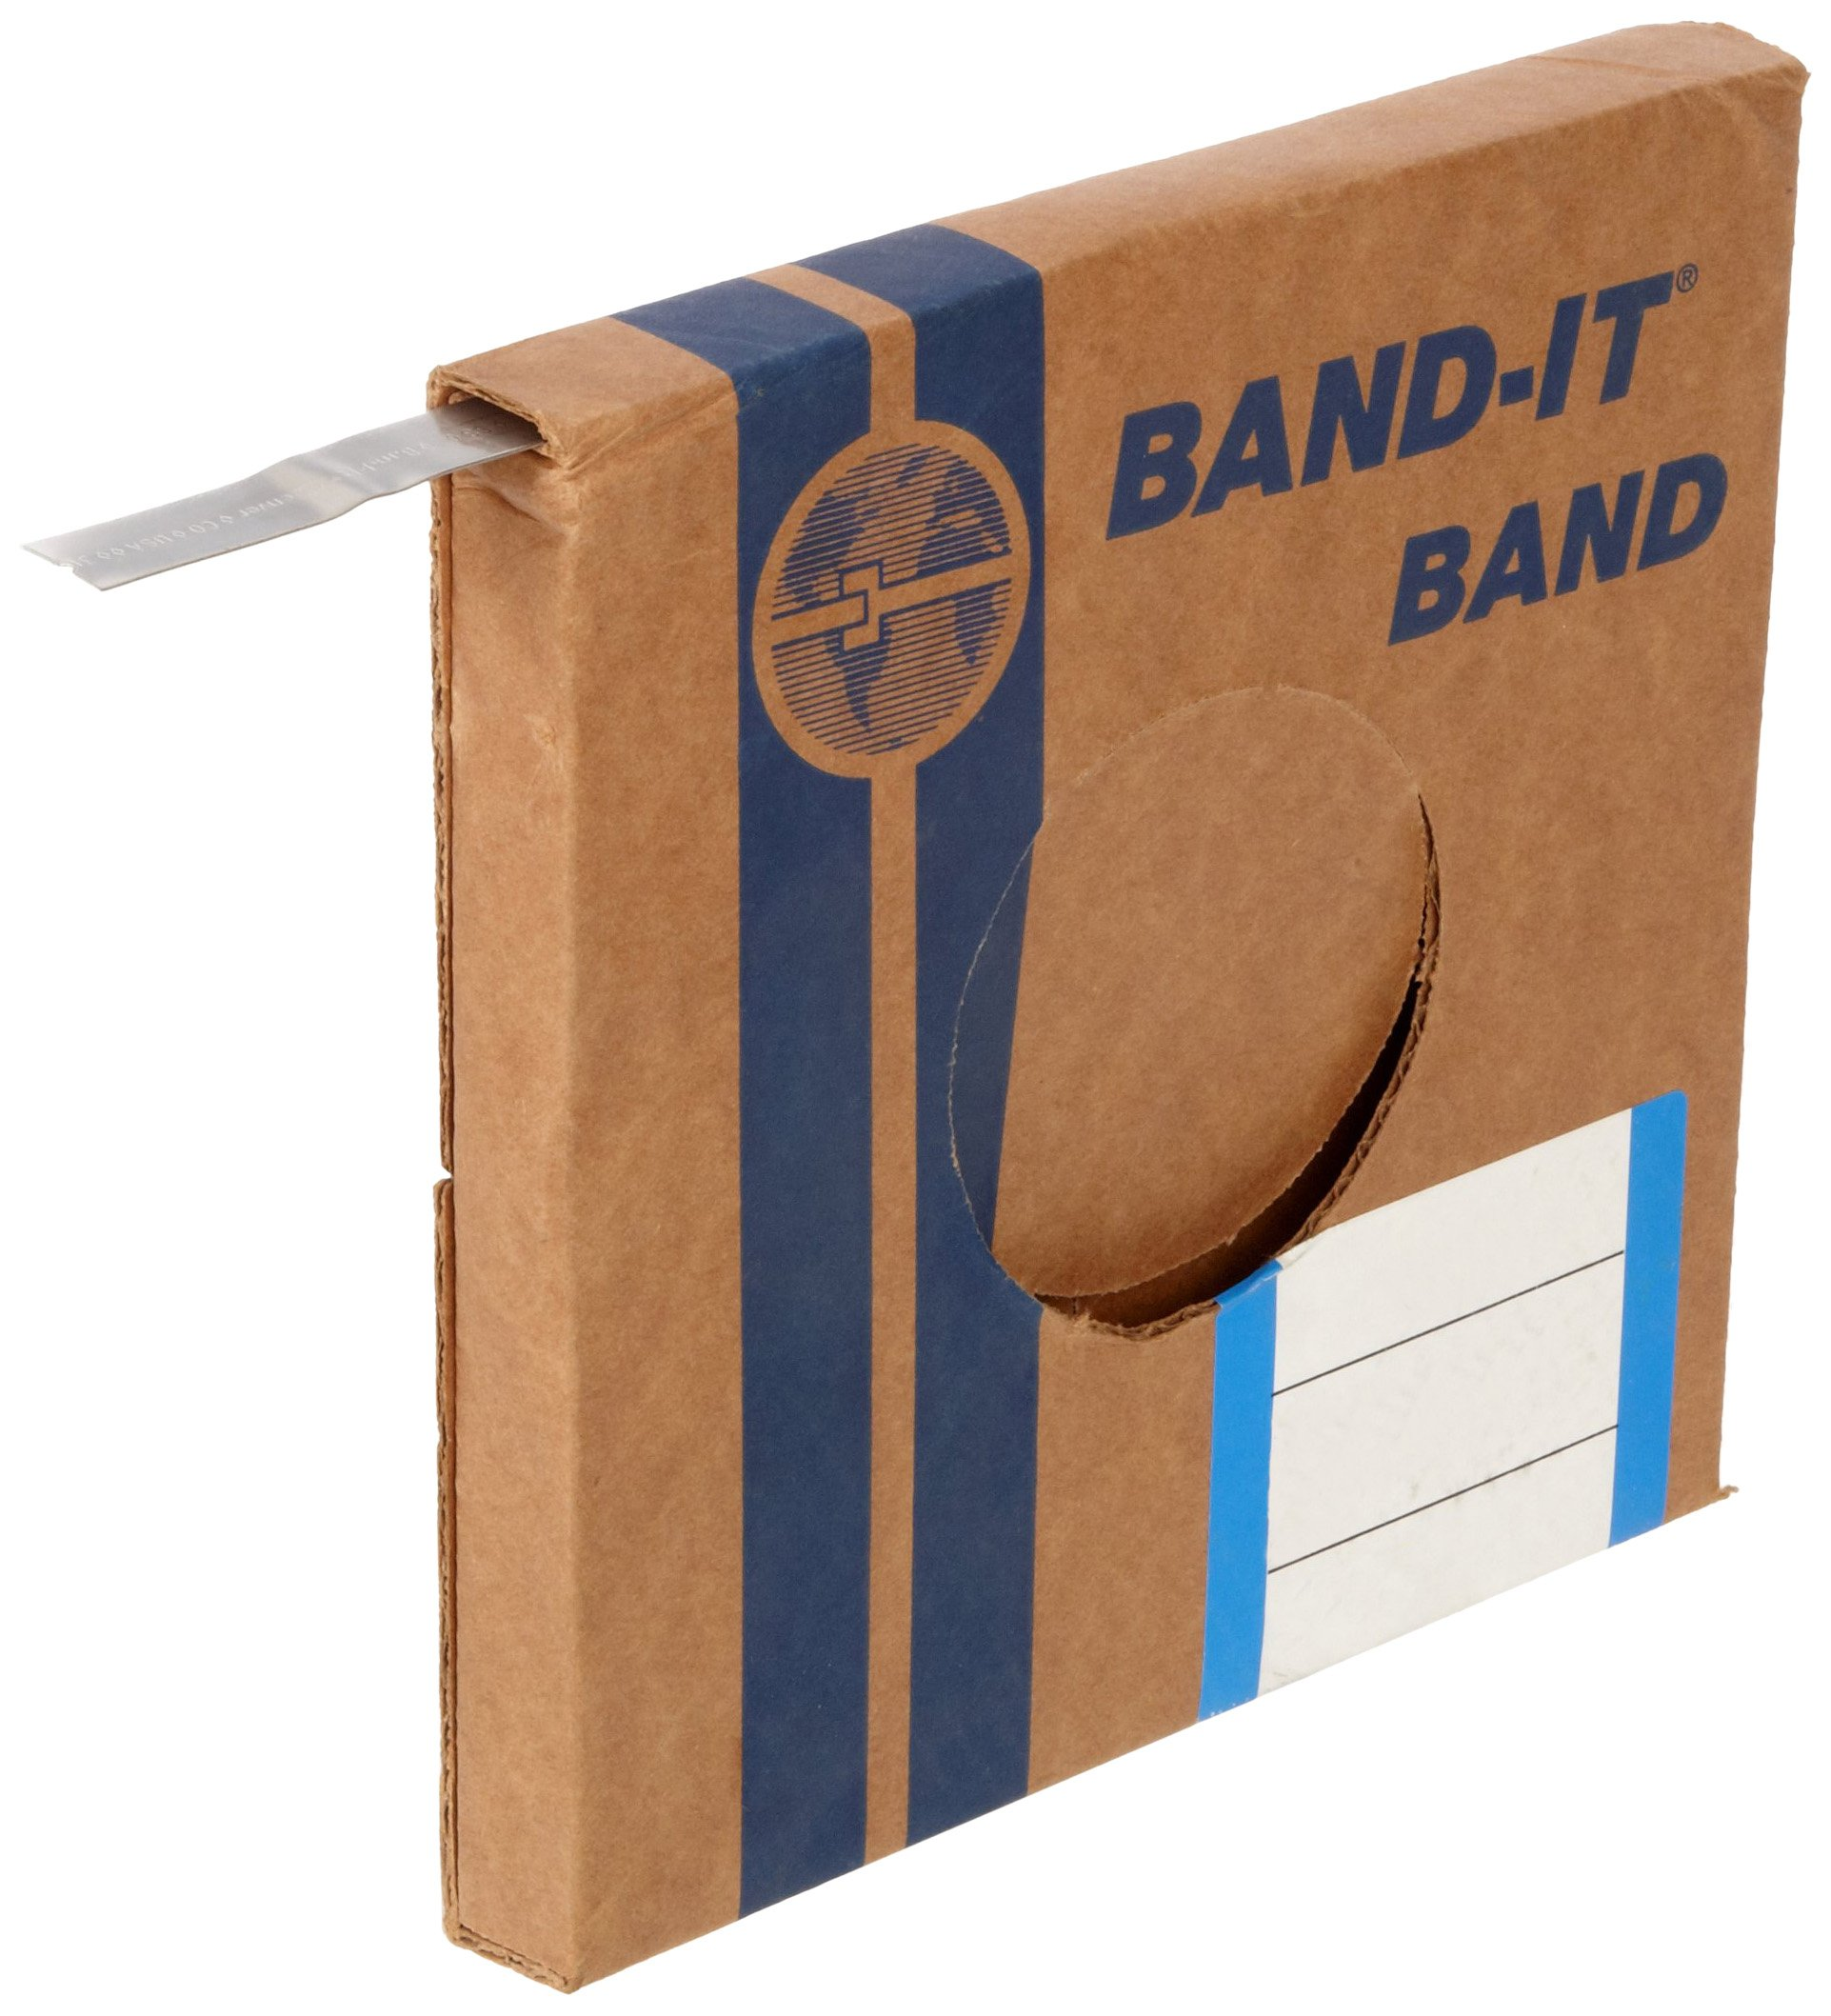 BAND-IT C40699 316 Stainless Steel Uncoated Band, 3/4'' Width X 0.030'' Thick, 100 Feet Roll by Band-It